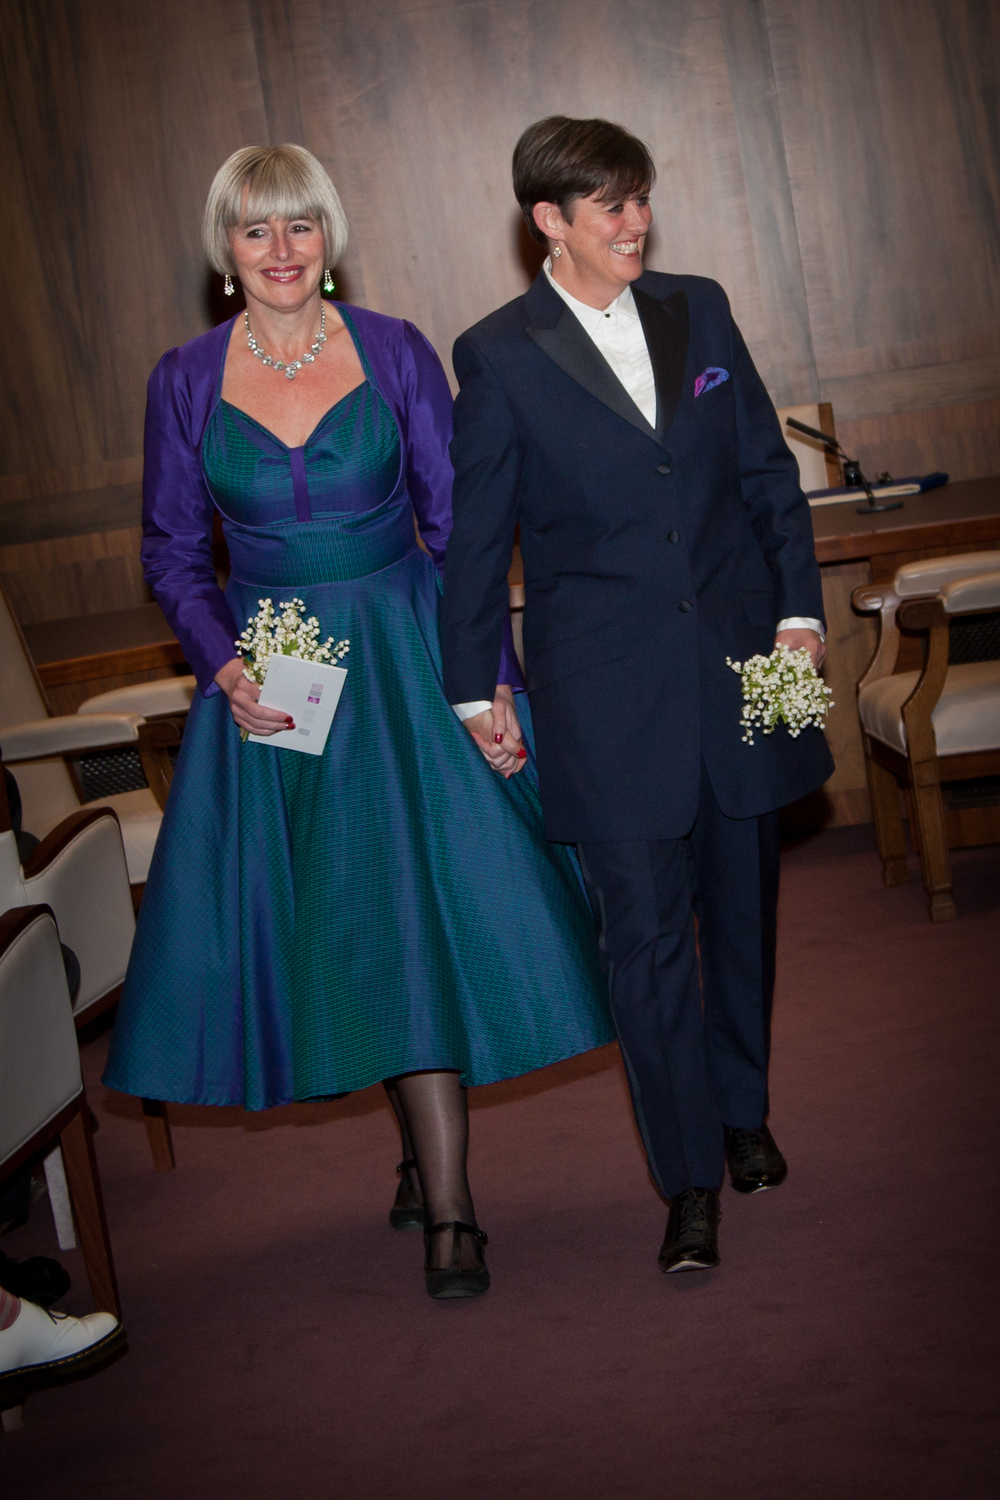 Ladies tailoring susannah hall tailors for Lesbian wedding dresses and suits